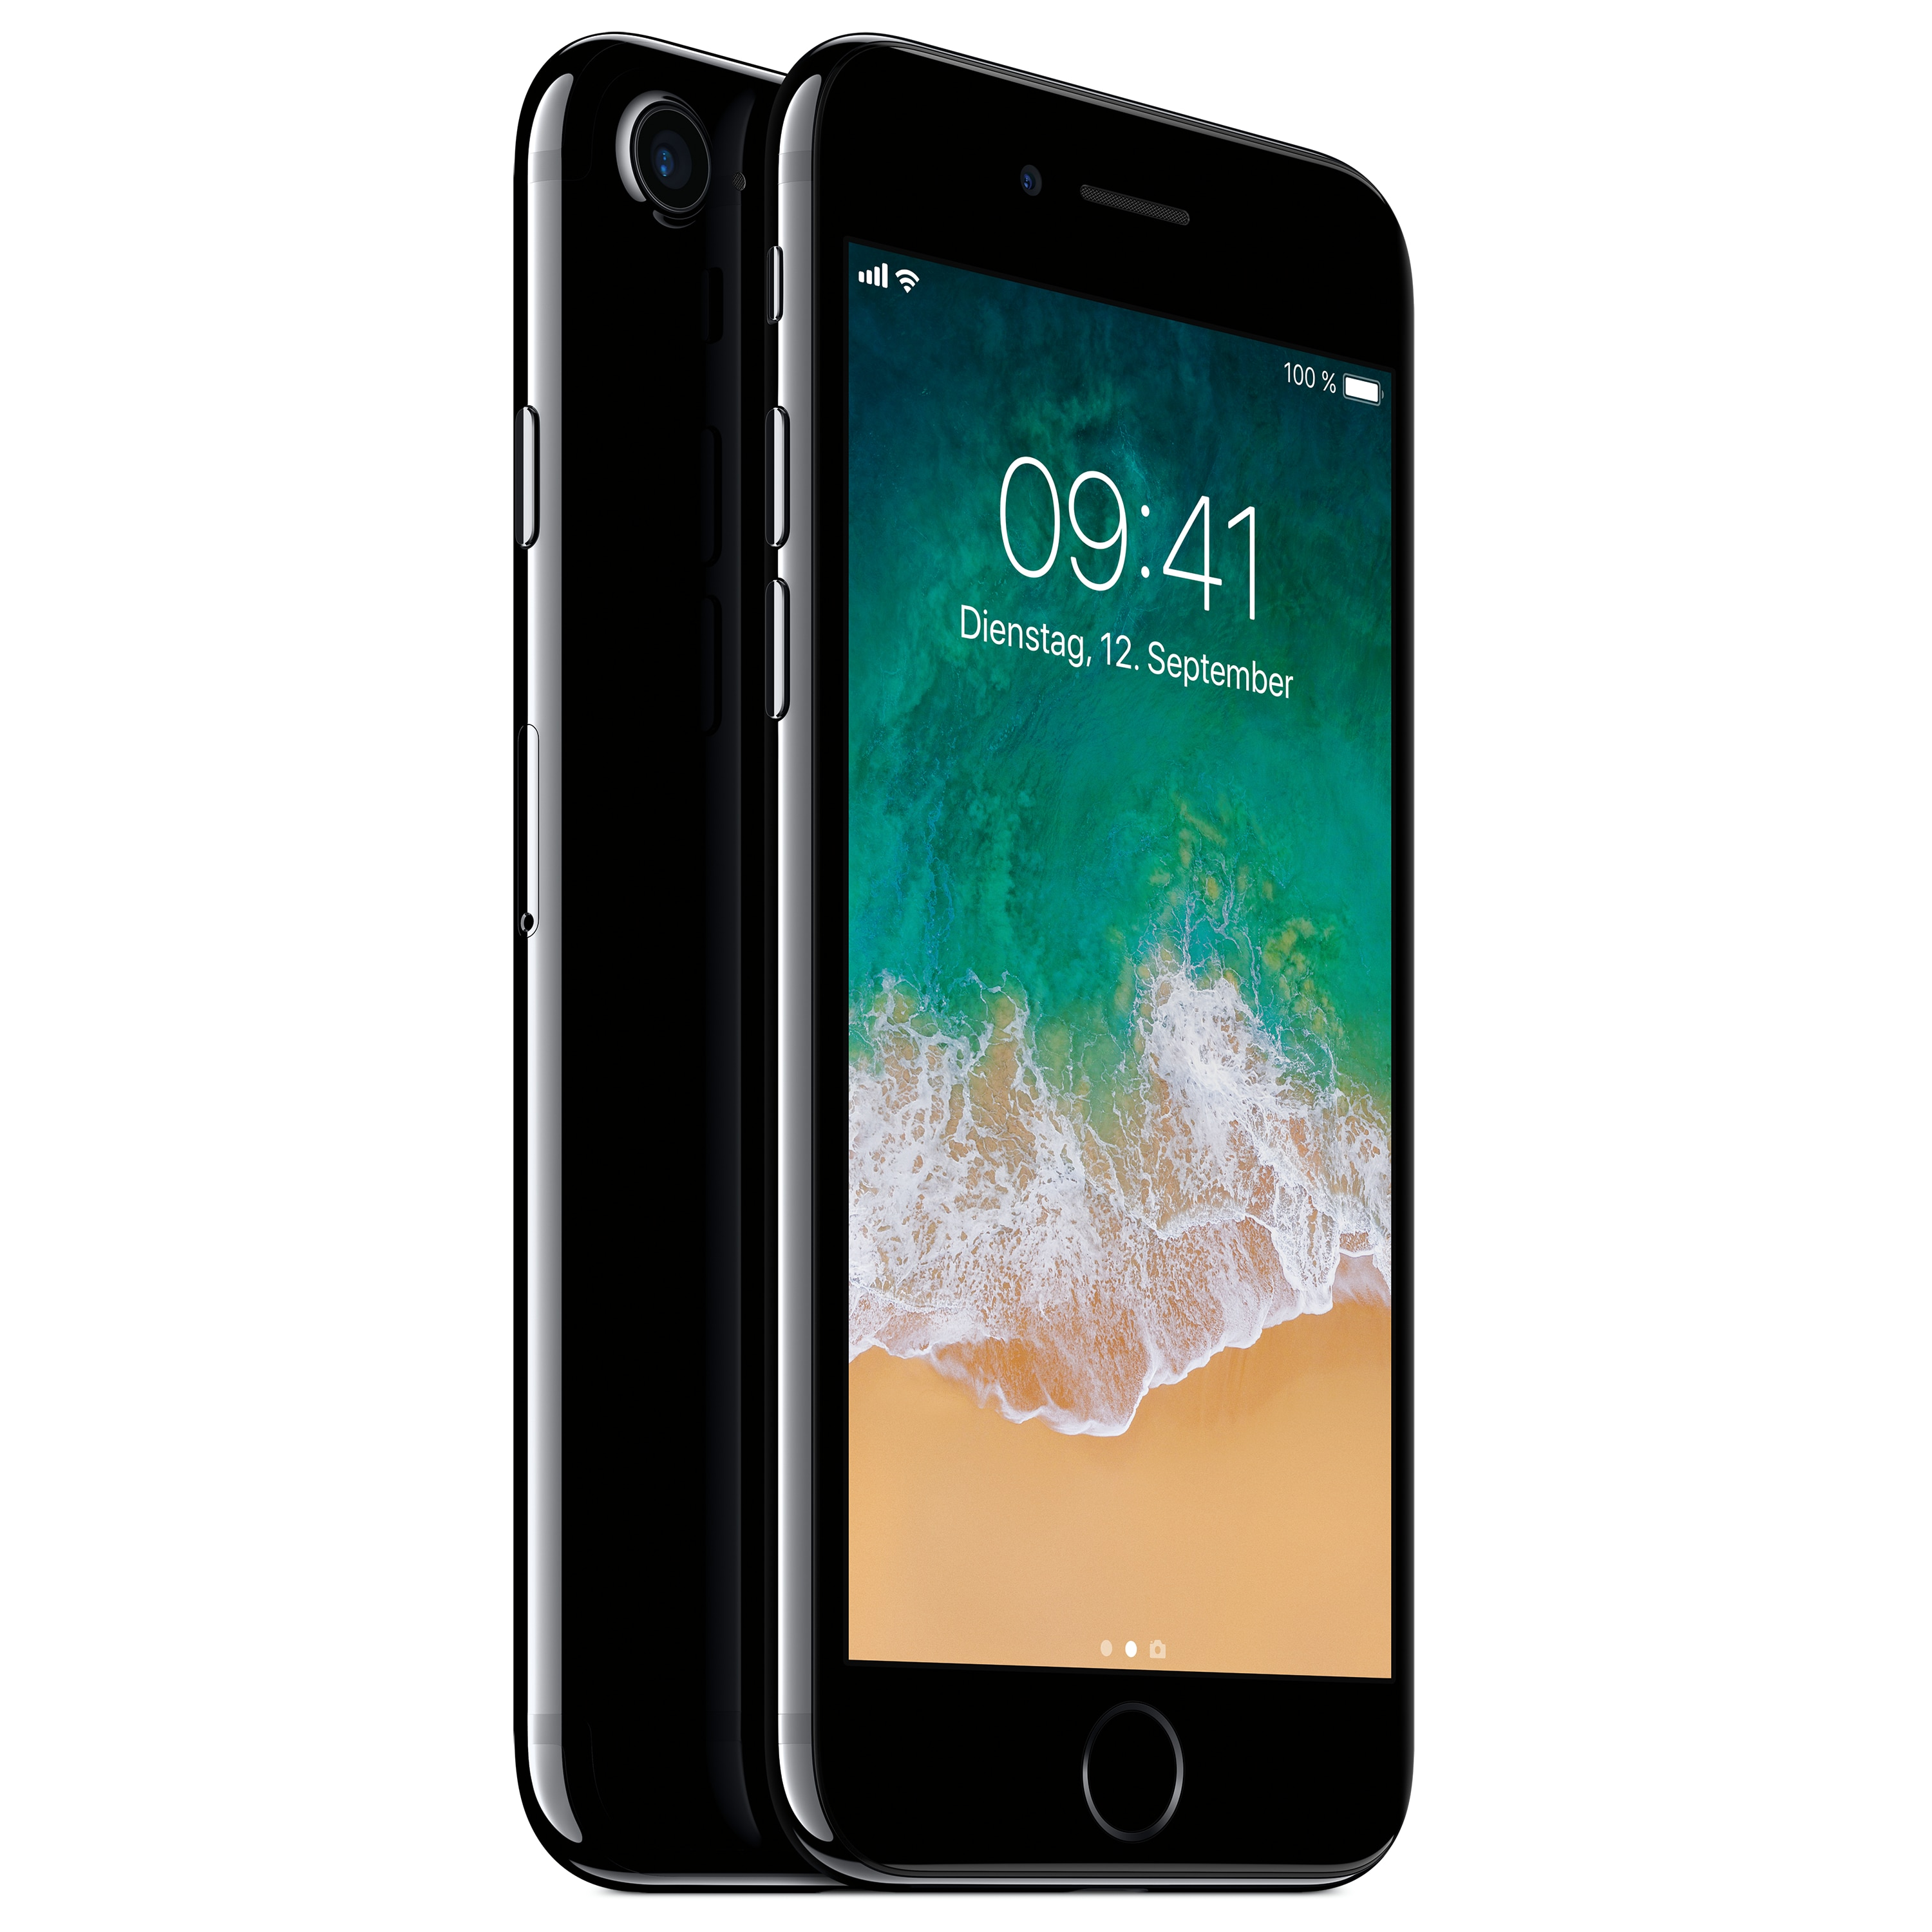 APPLE iPhone 7 Smartphone, 11,94 cm (4,7) Retina HD Display, 128 GB Speicher, A10 Fusion Chip, LTE, Touch ID, generalüberholt